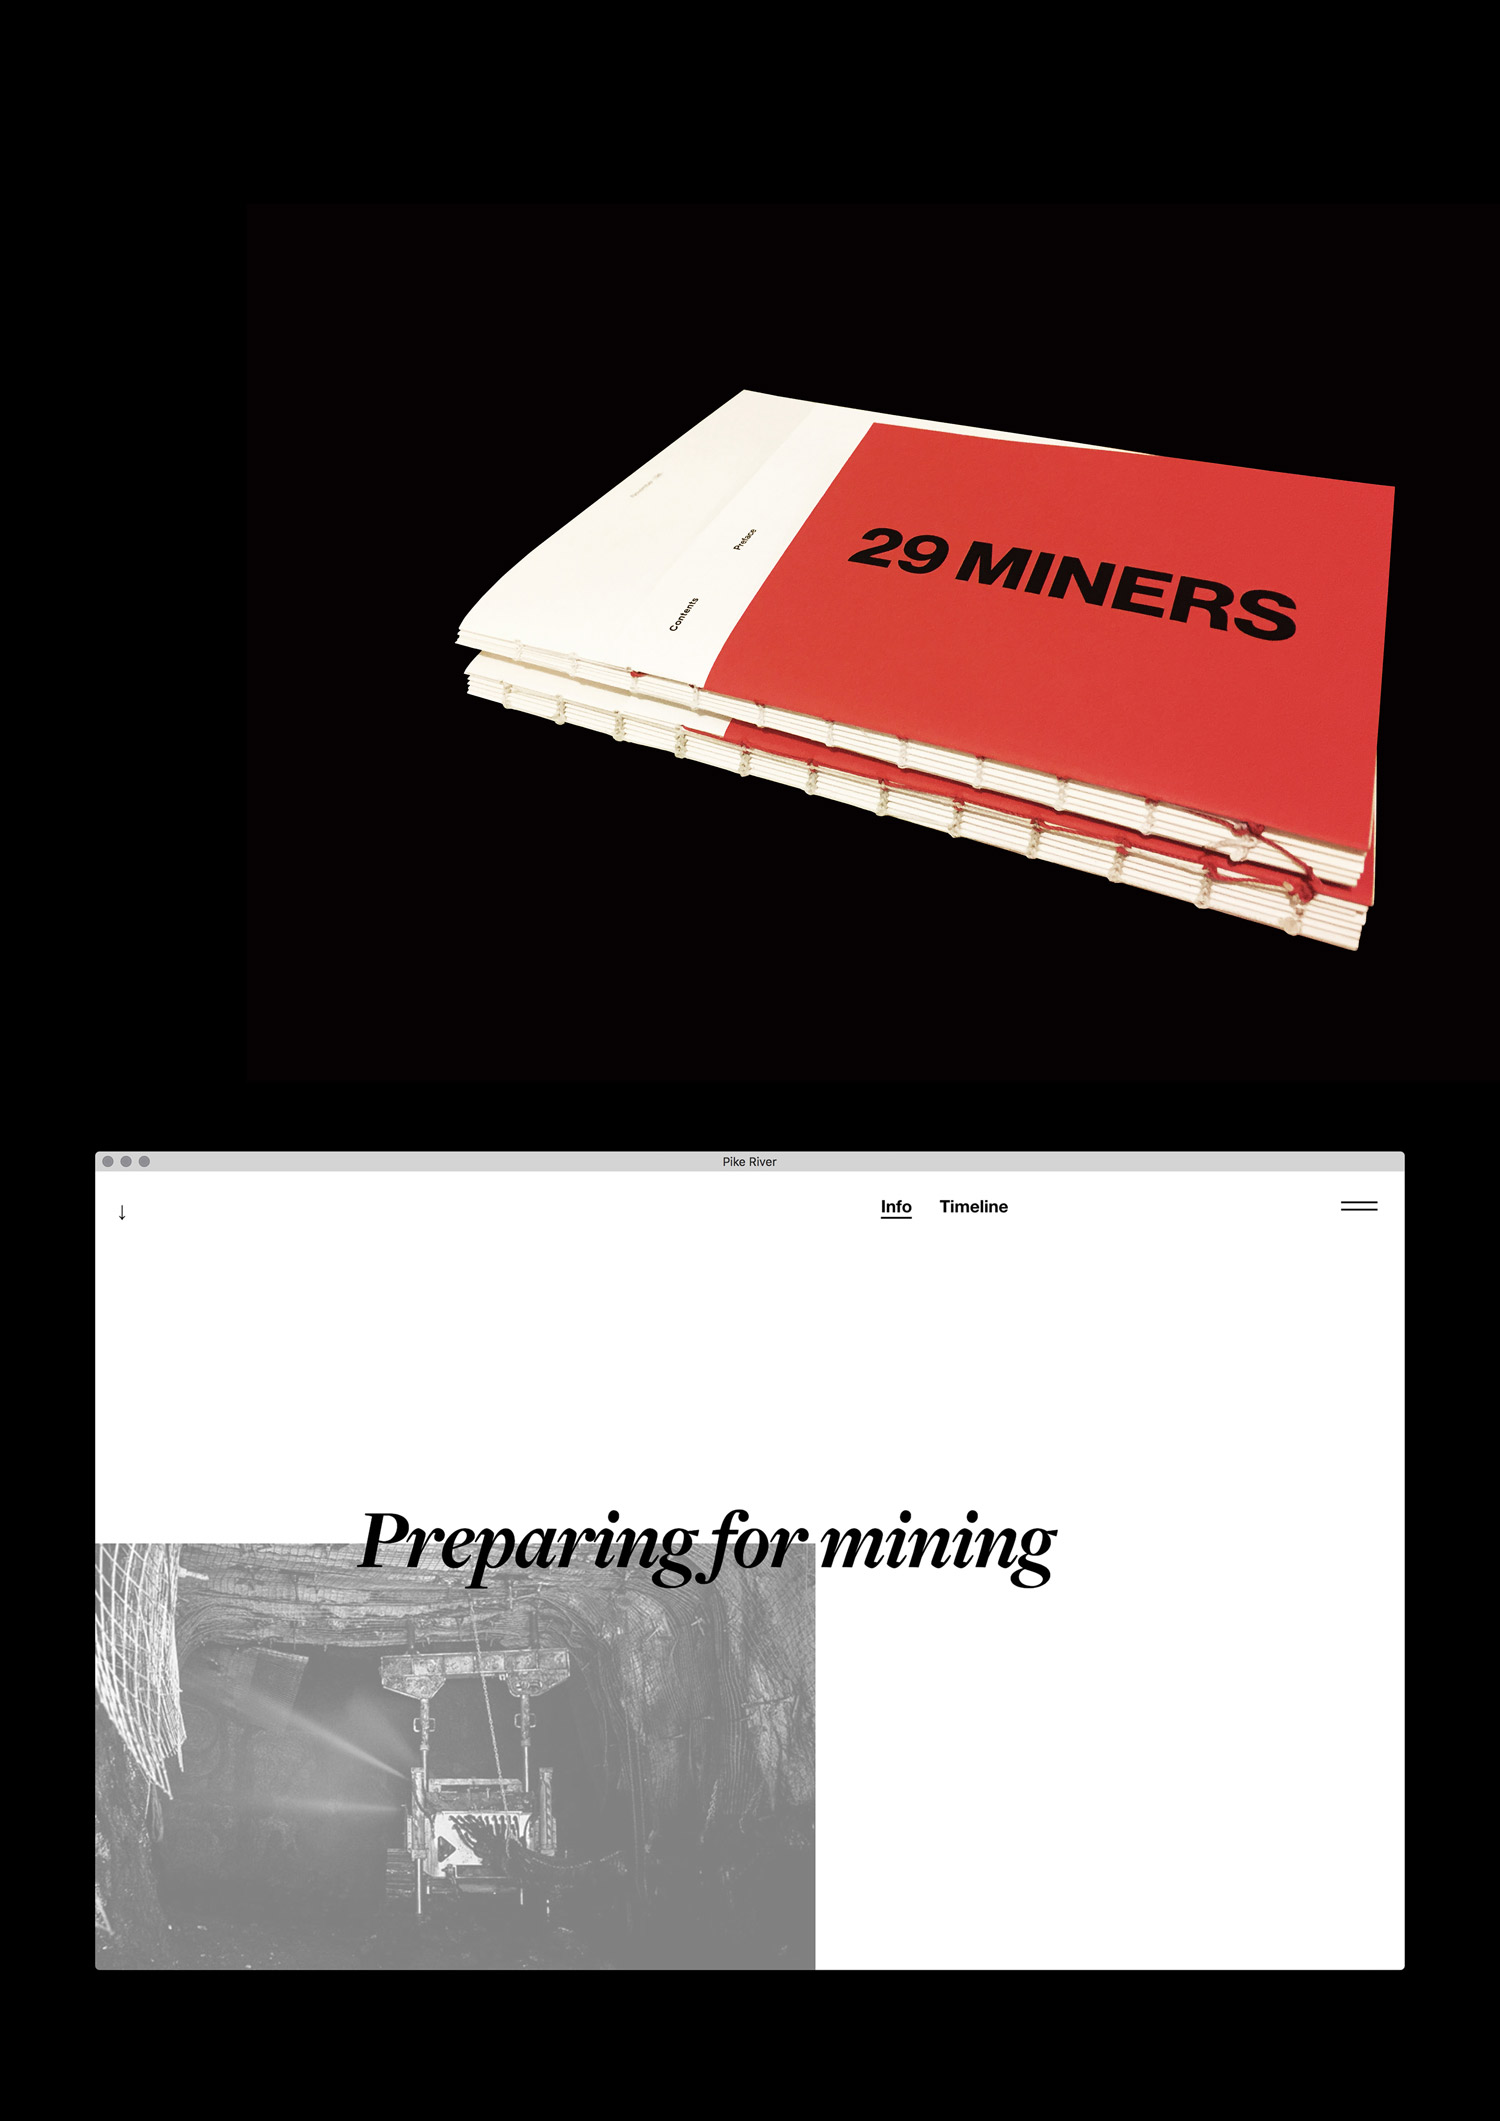 Supporting publication. Pike River mining disaster